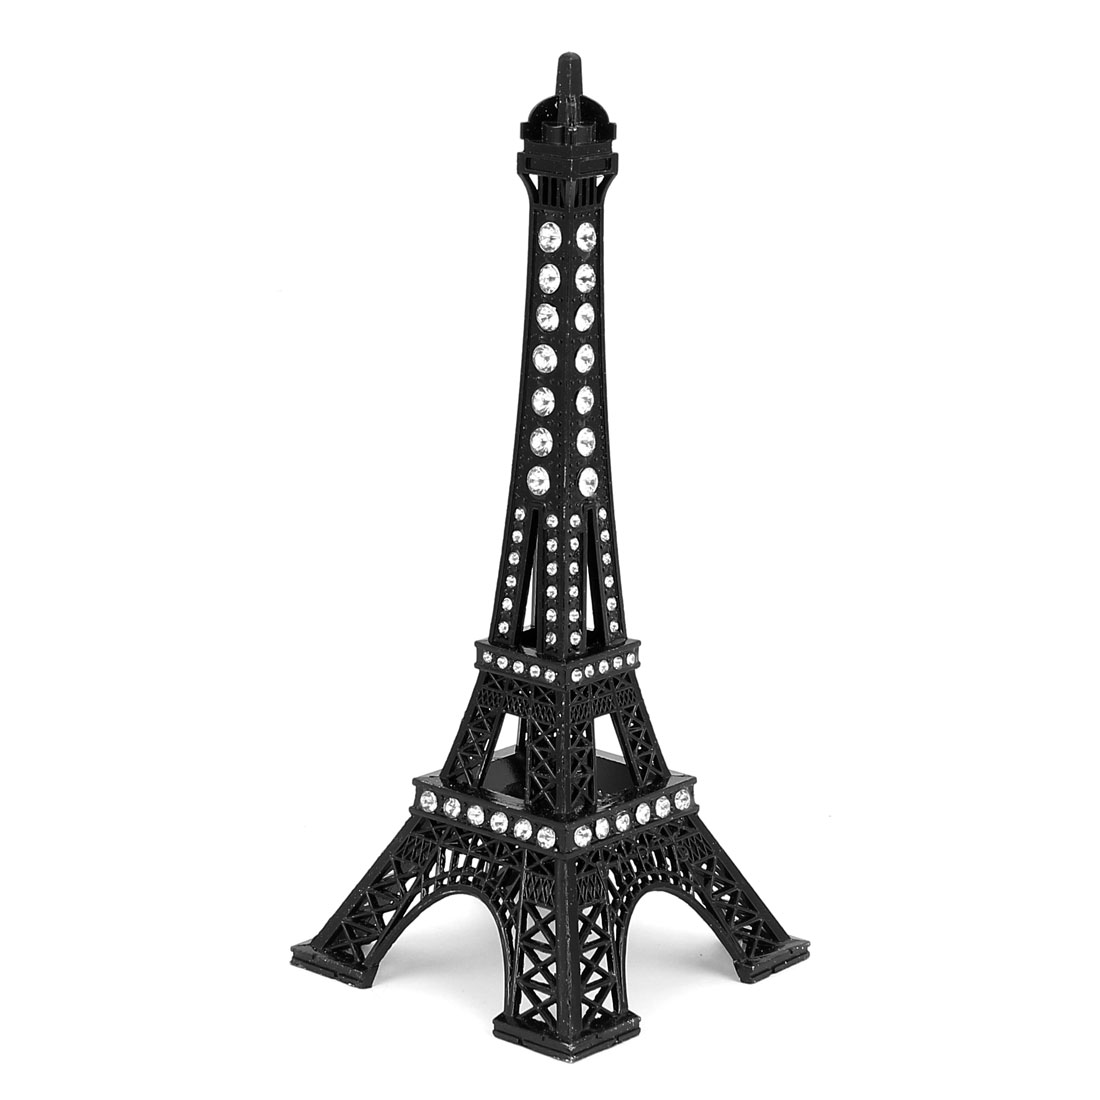 "Rhinestone Detail Mini France Paris Eiffel Tower Sculpture Statue Model Ornament 7"" 18cm Black"